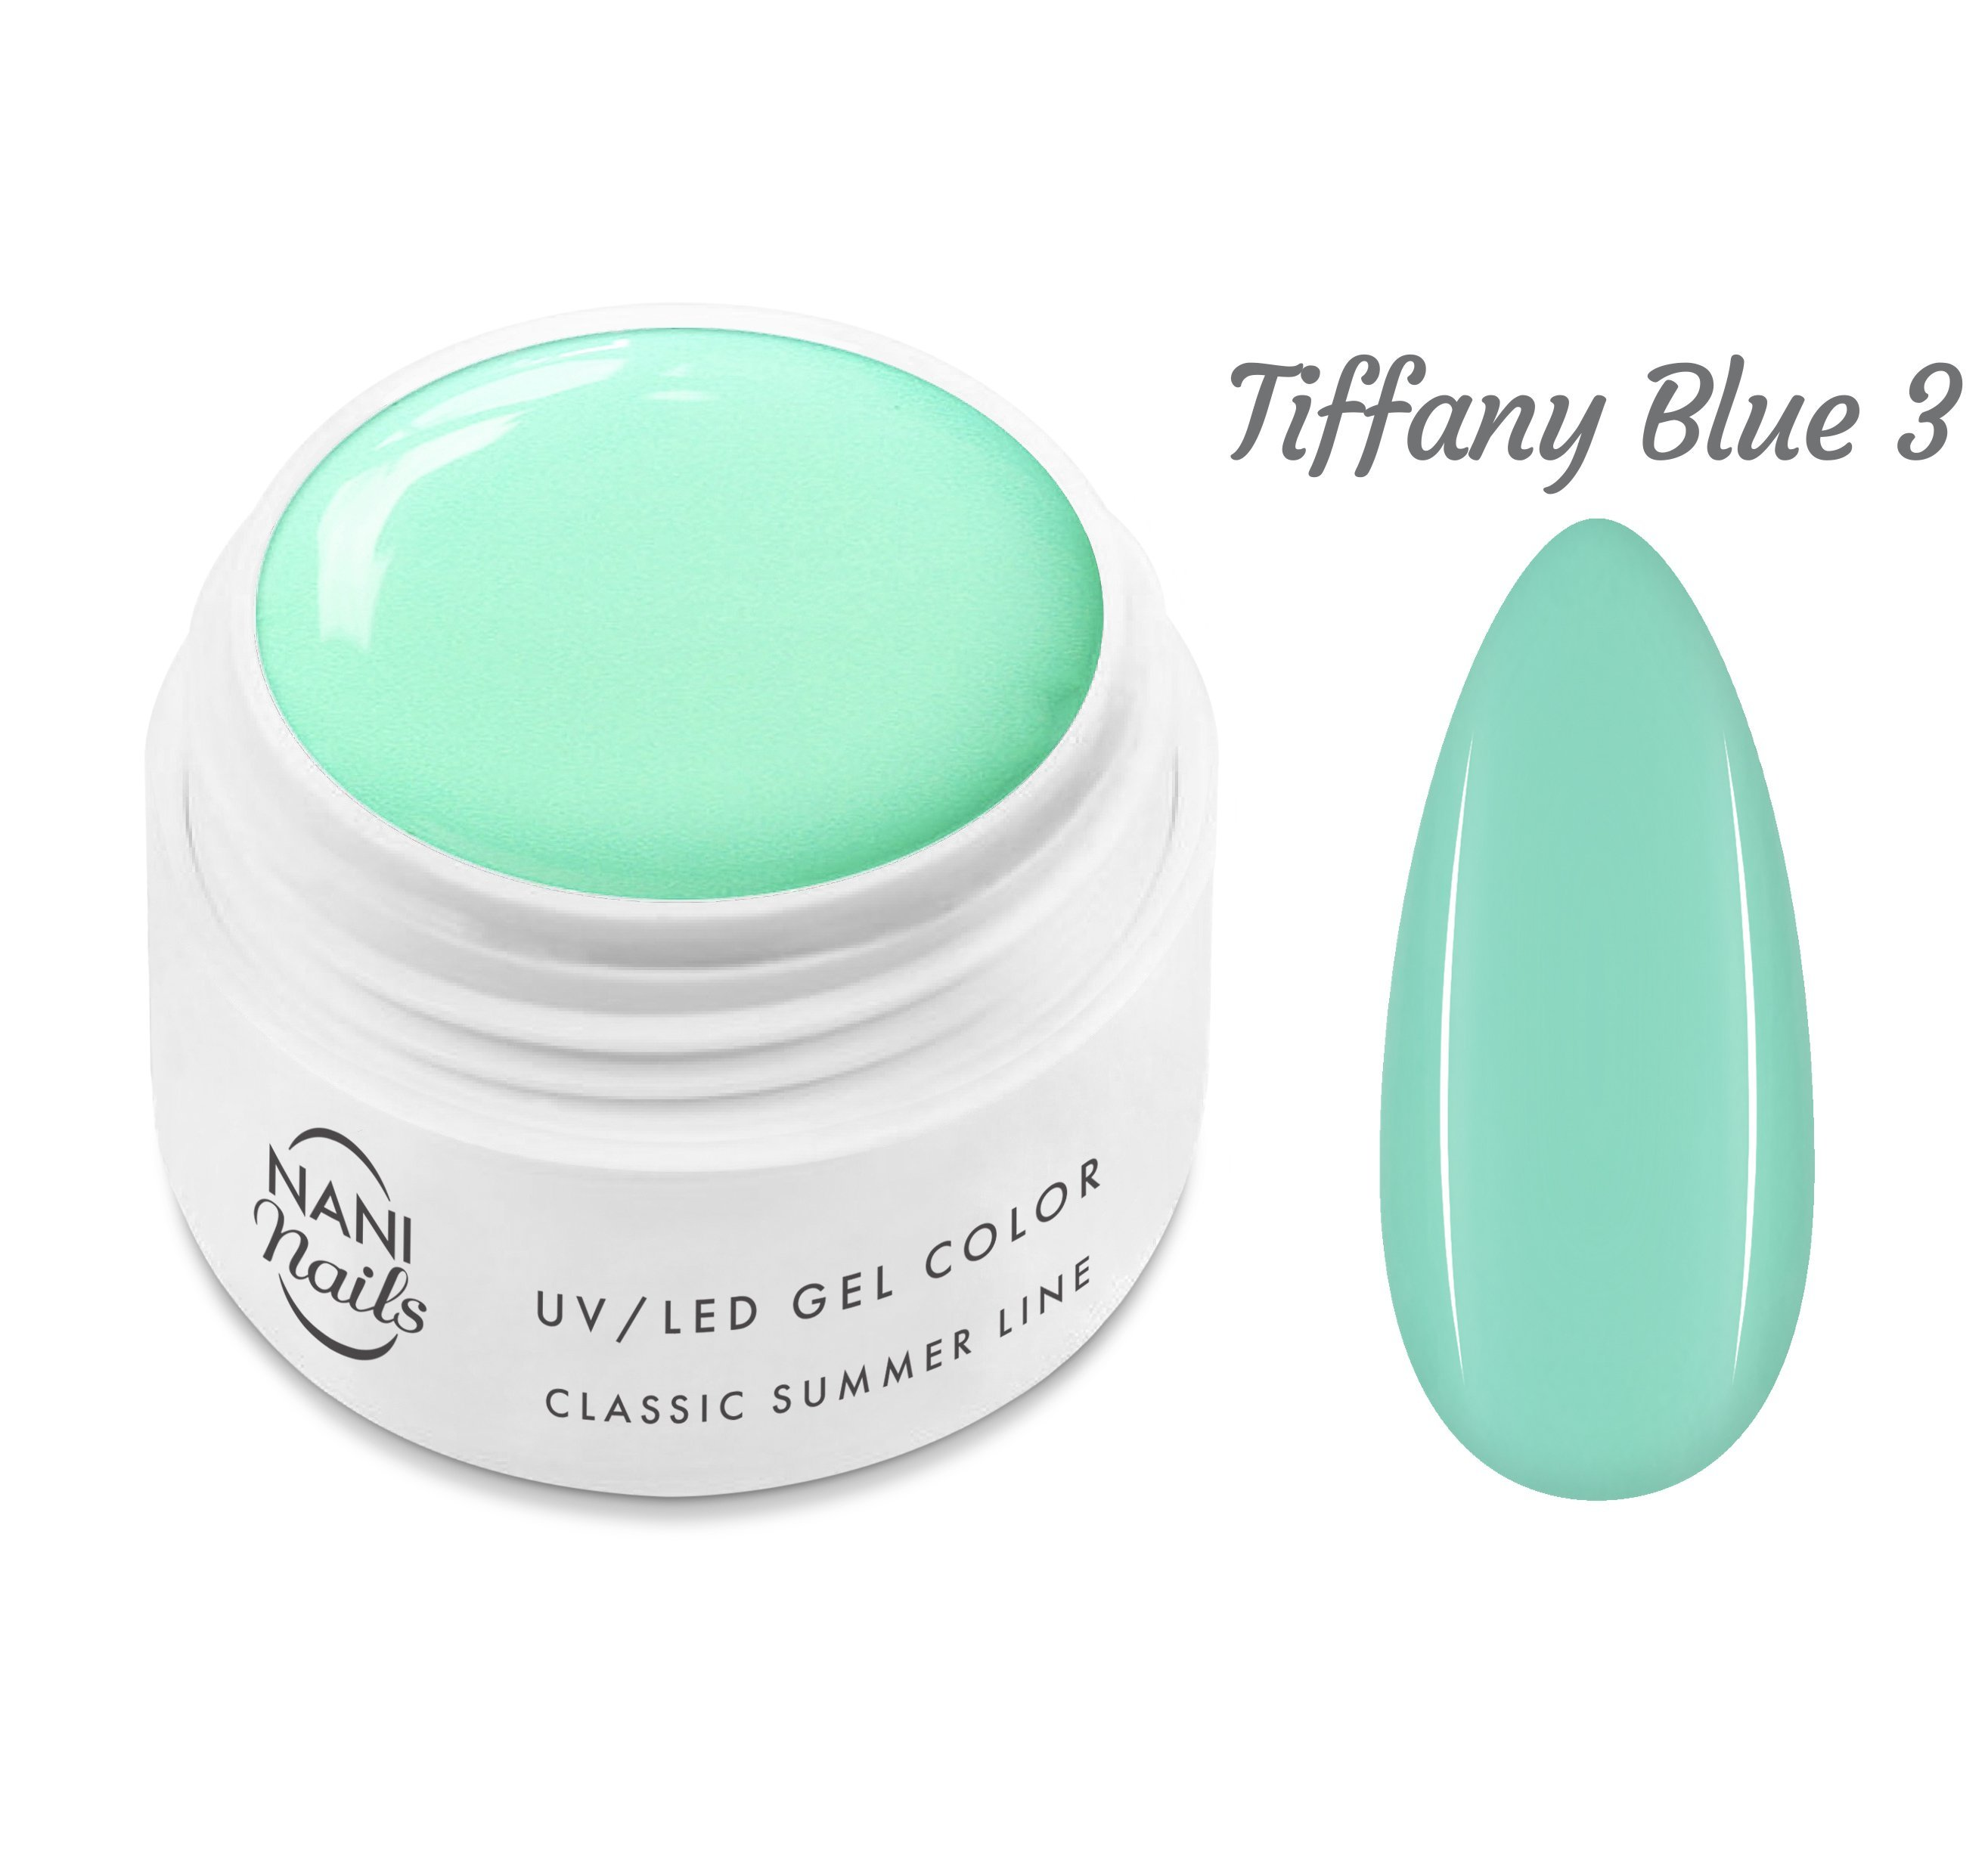 NANI UV gél Classic Summer Line 5 ml - Tiffany Blue